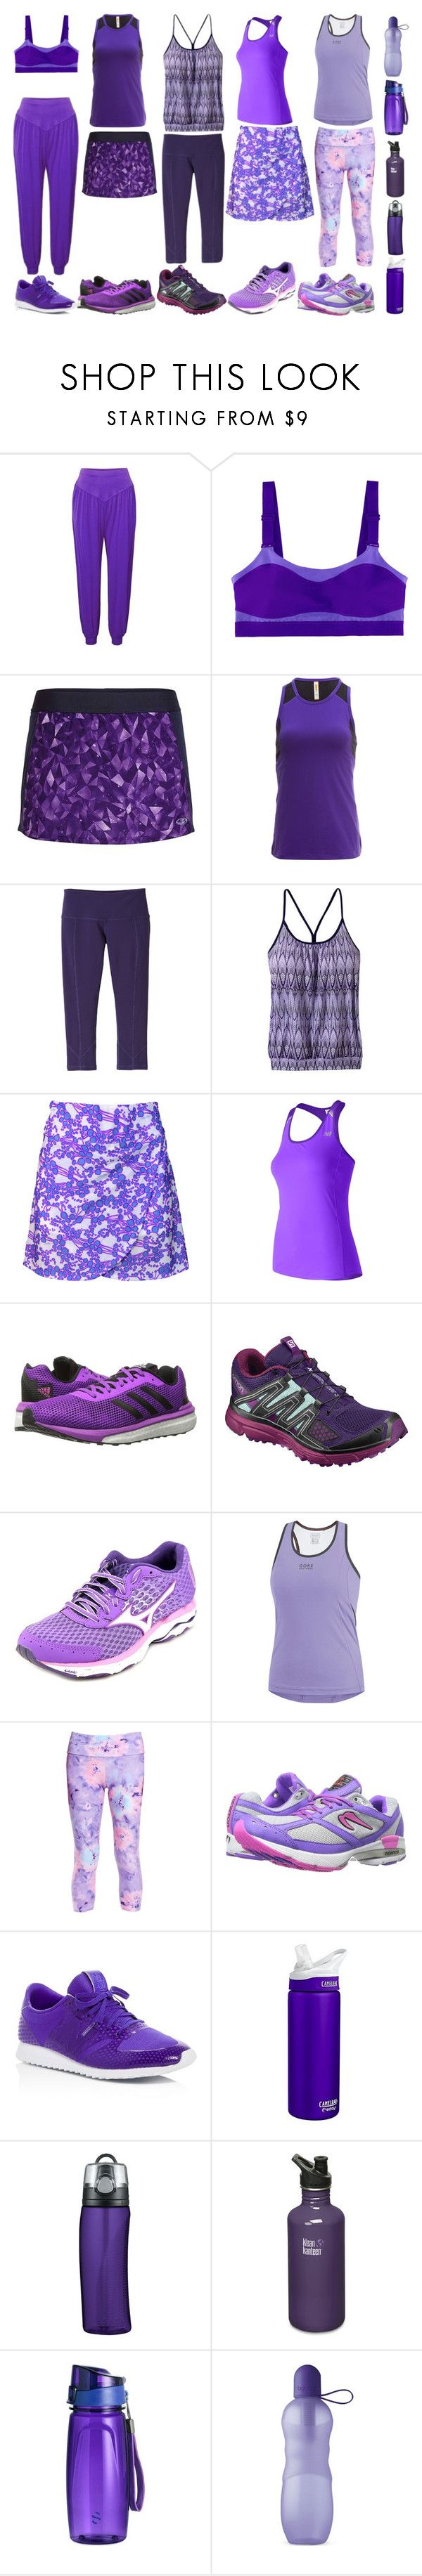 """Purple Sails"" by quinn-avina ❤ liked on Polyvore featuring Icebreaker, Lucy, prAna, New Balance, adidas, Salomon, Mizuno, Gore Bike Wear, Tiny Fish and Newton"